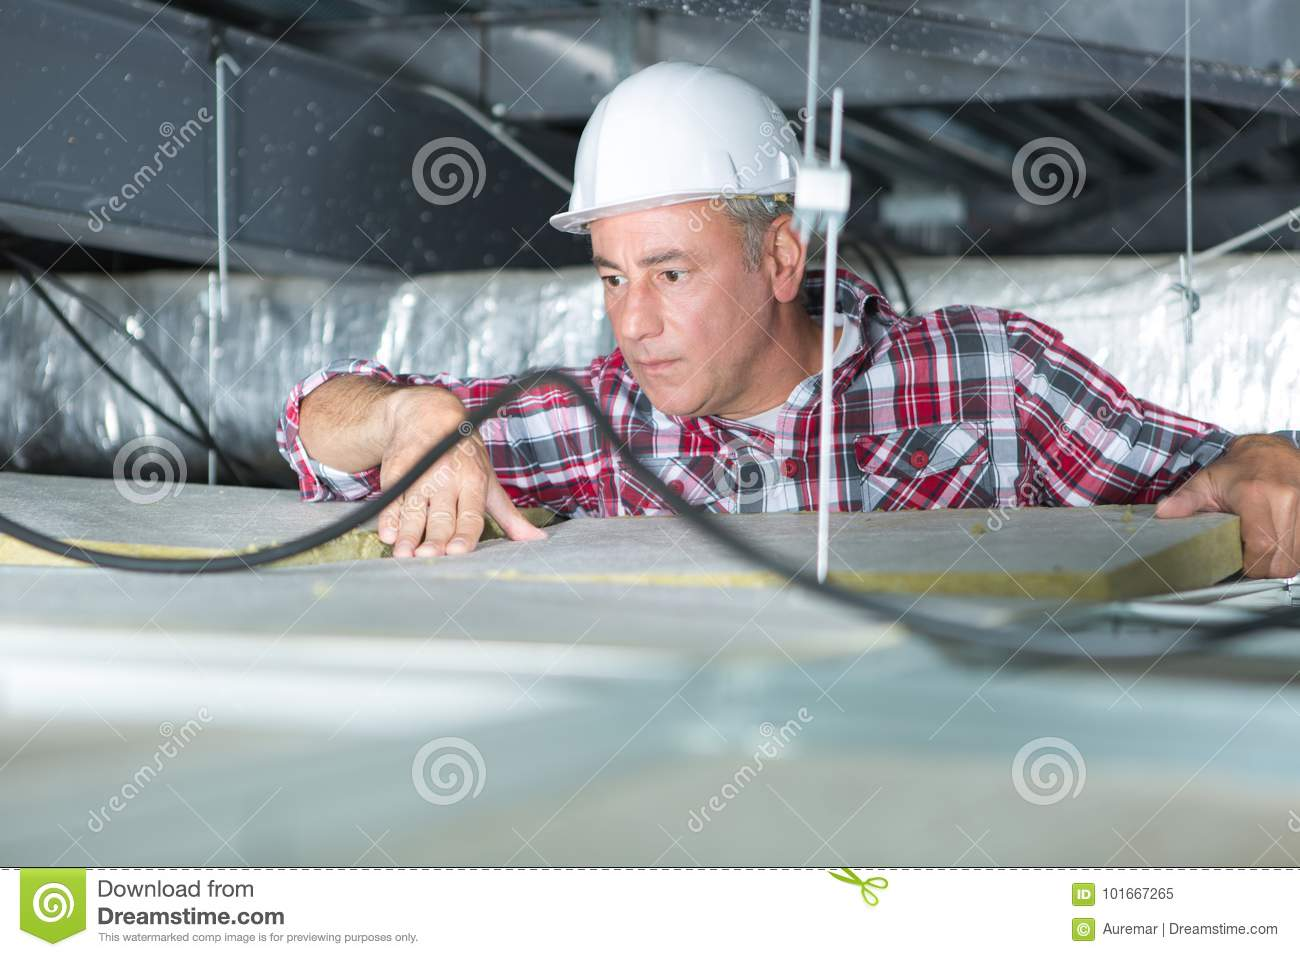 Electrician fixing neon on ceiling